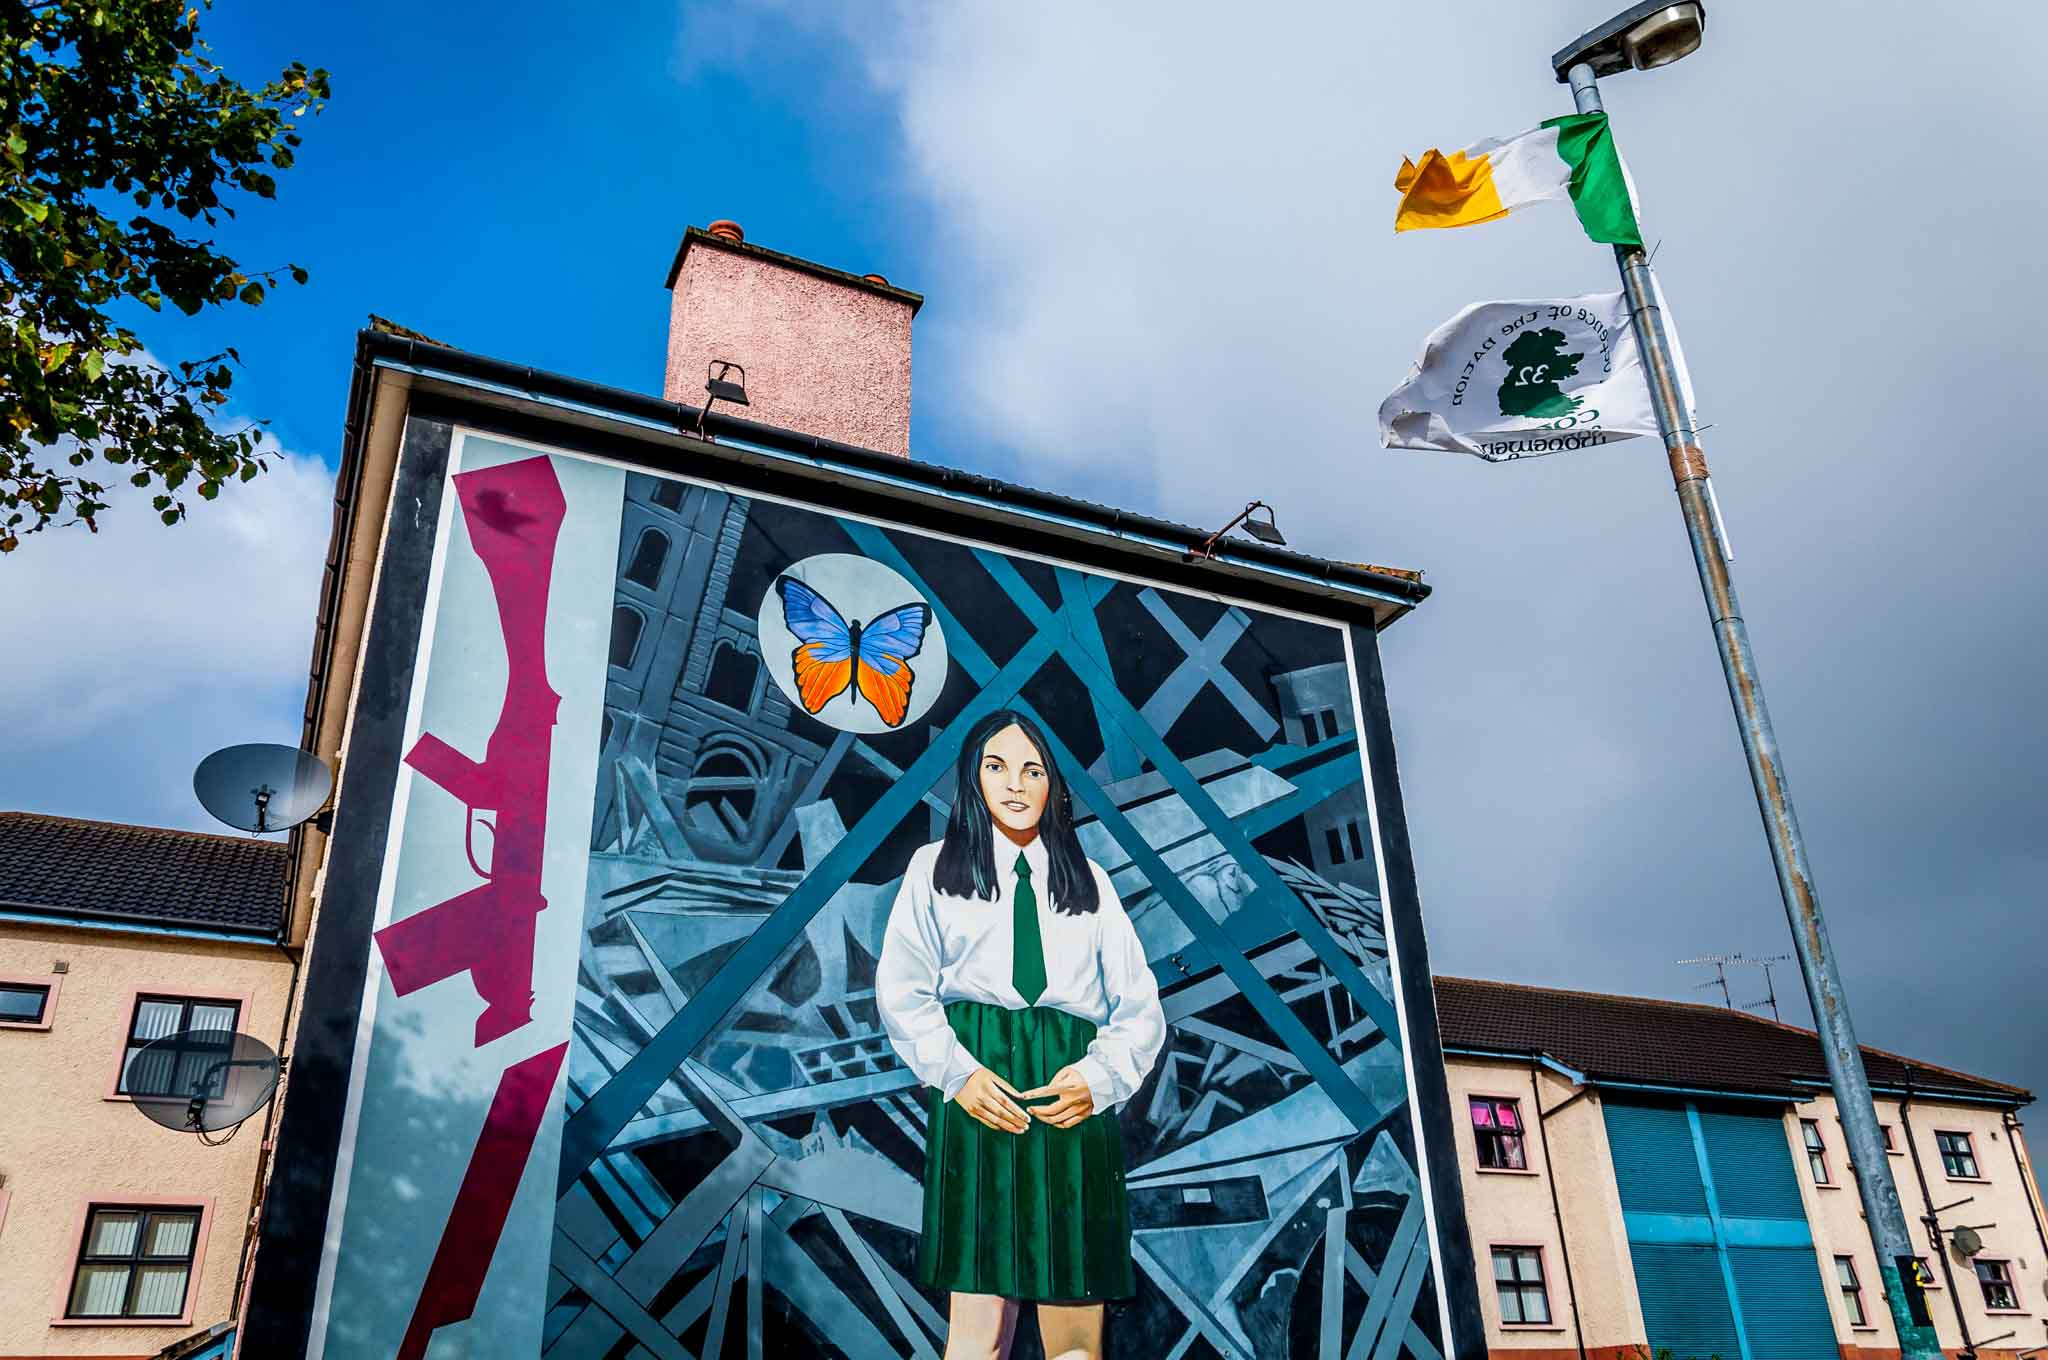 End of Innocence mural featuring girl in a school uniform alongside a broken rifle